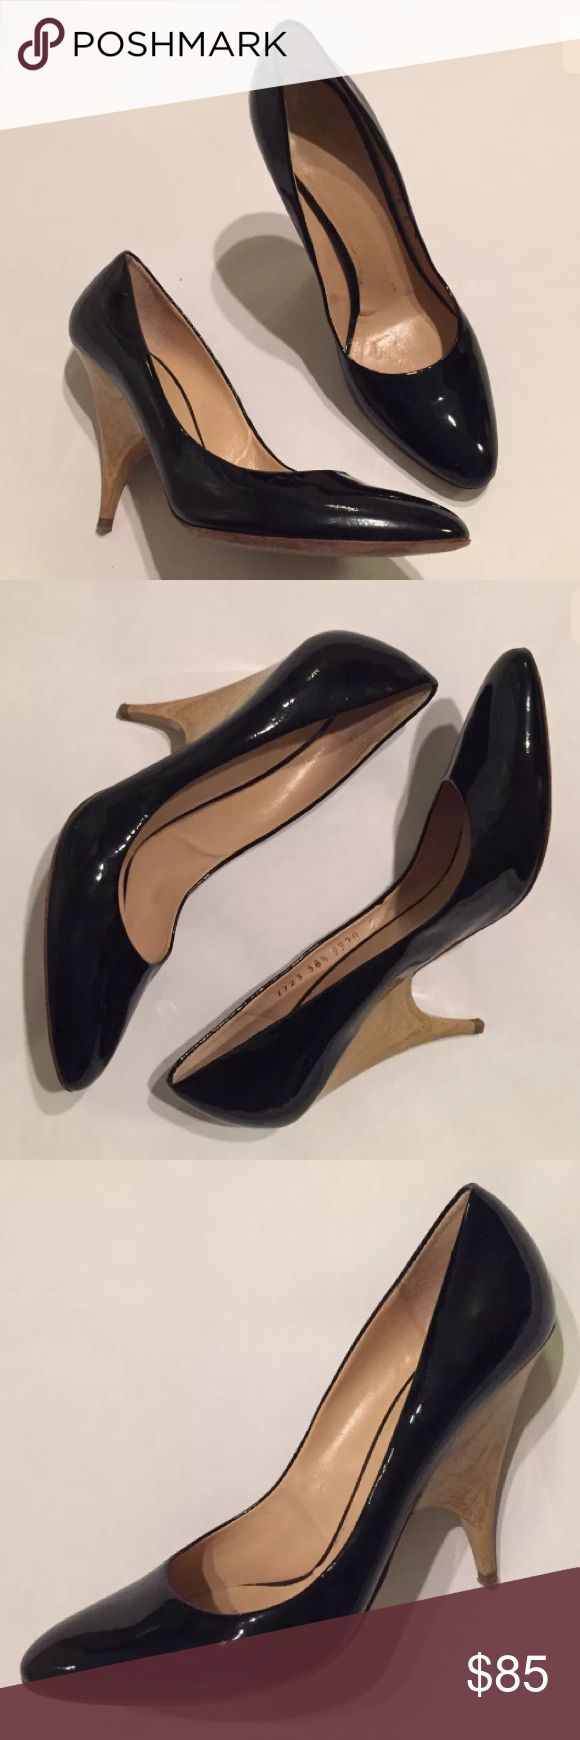 """Giuseppe Zanotti Patent Leather Wood Pumps 8.5 Giuseppe Zanotti Patent Pump with wooden heel  Has a tiny hole on outside of right heel as shoe Some nicks on each side of the heel   Size 38.5  US size 8.5 Heel height: approx. 4"""" Guiseppe Zanotti Shoes Heels"""